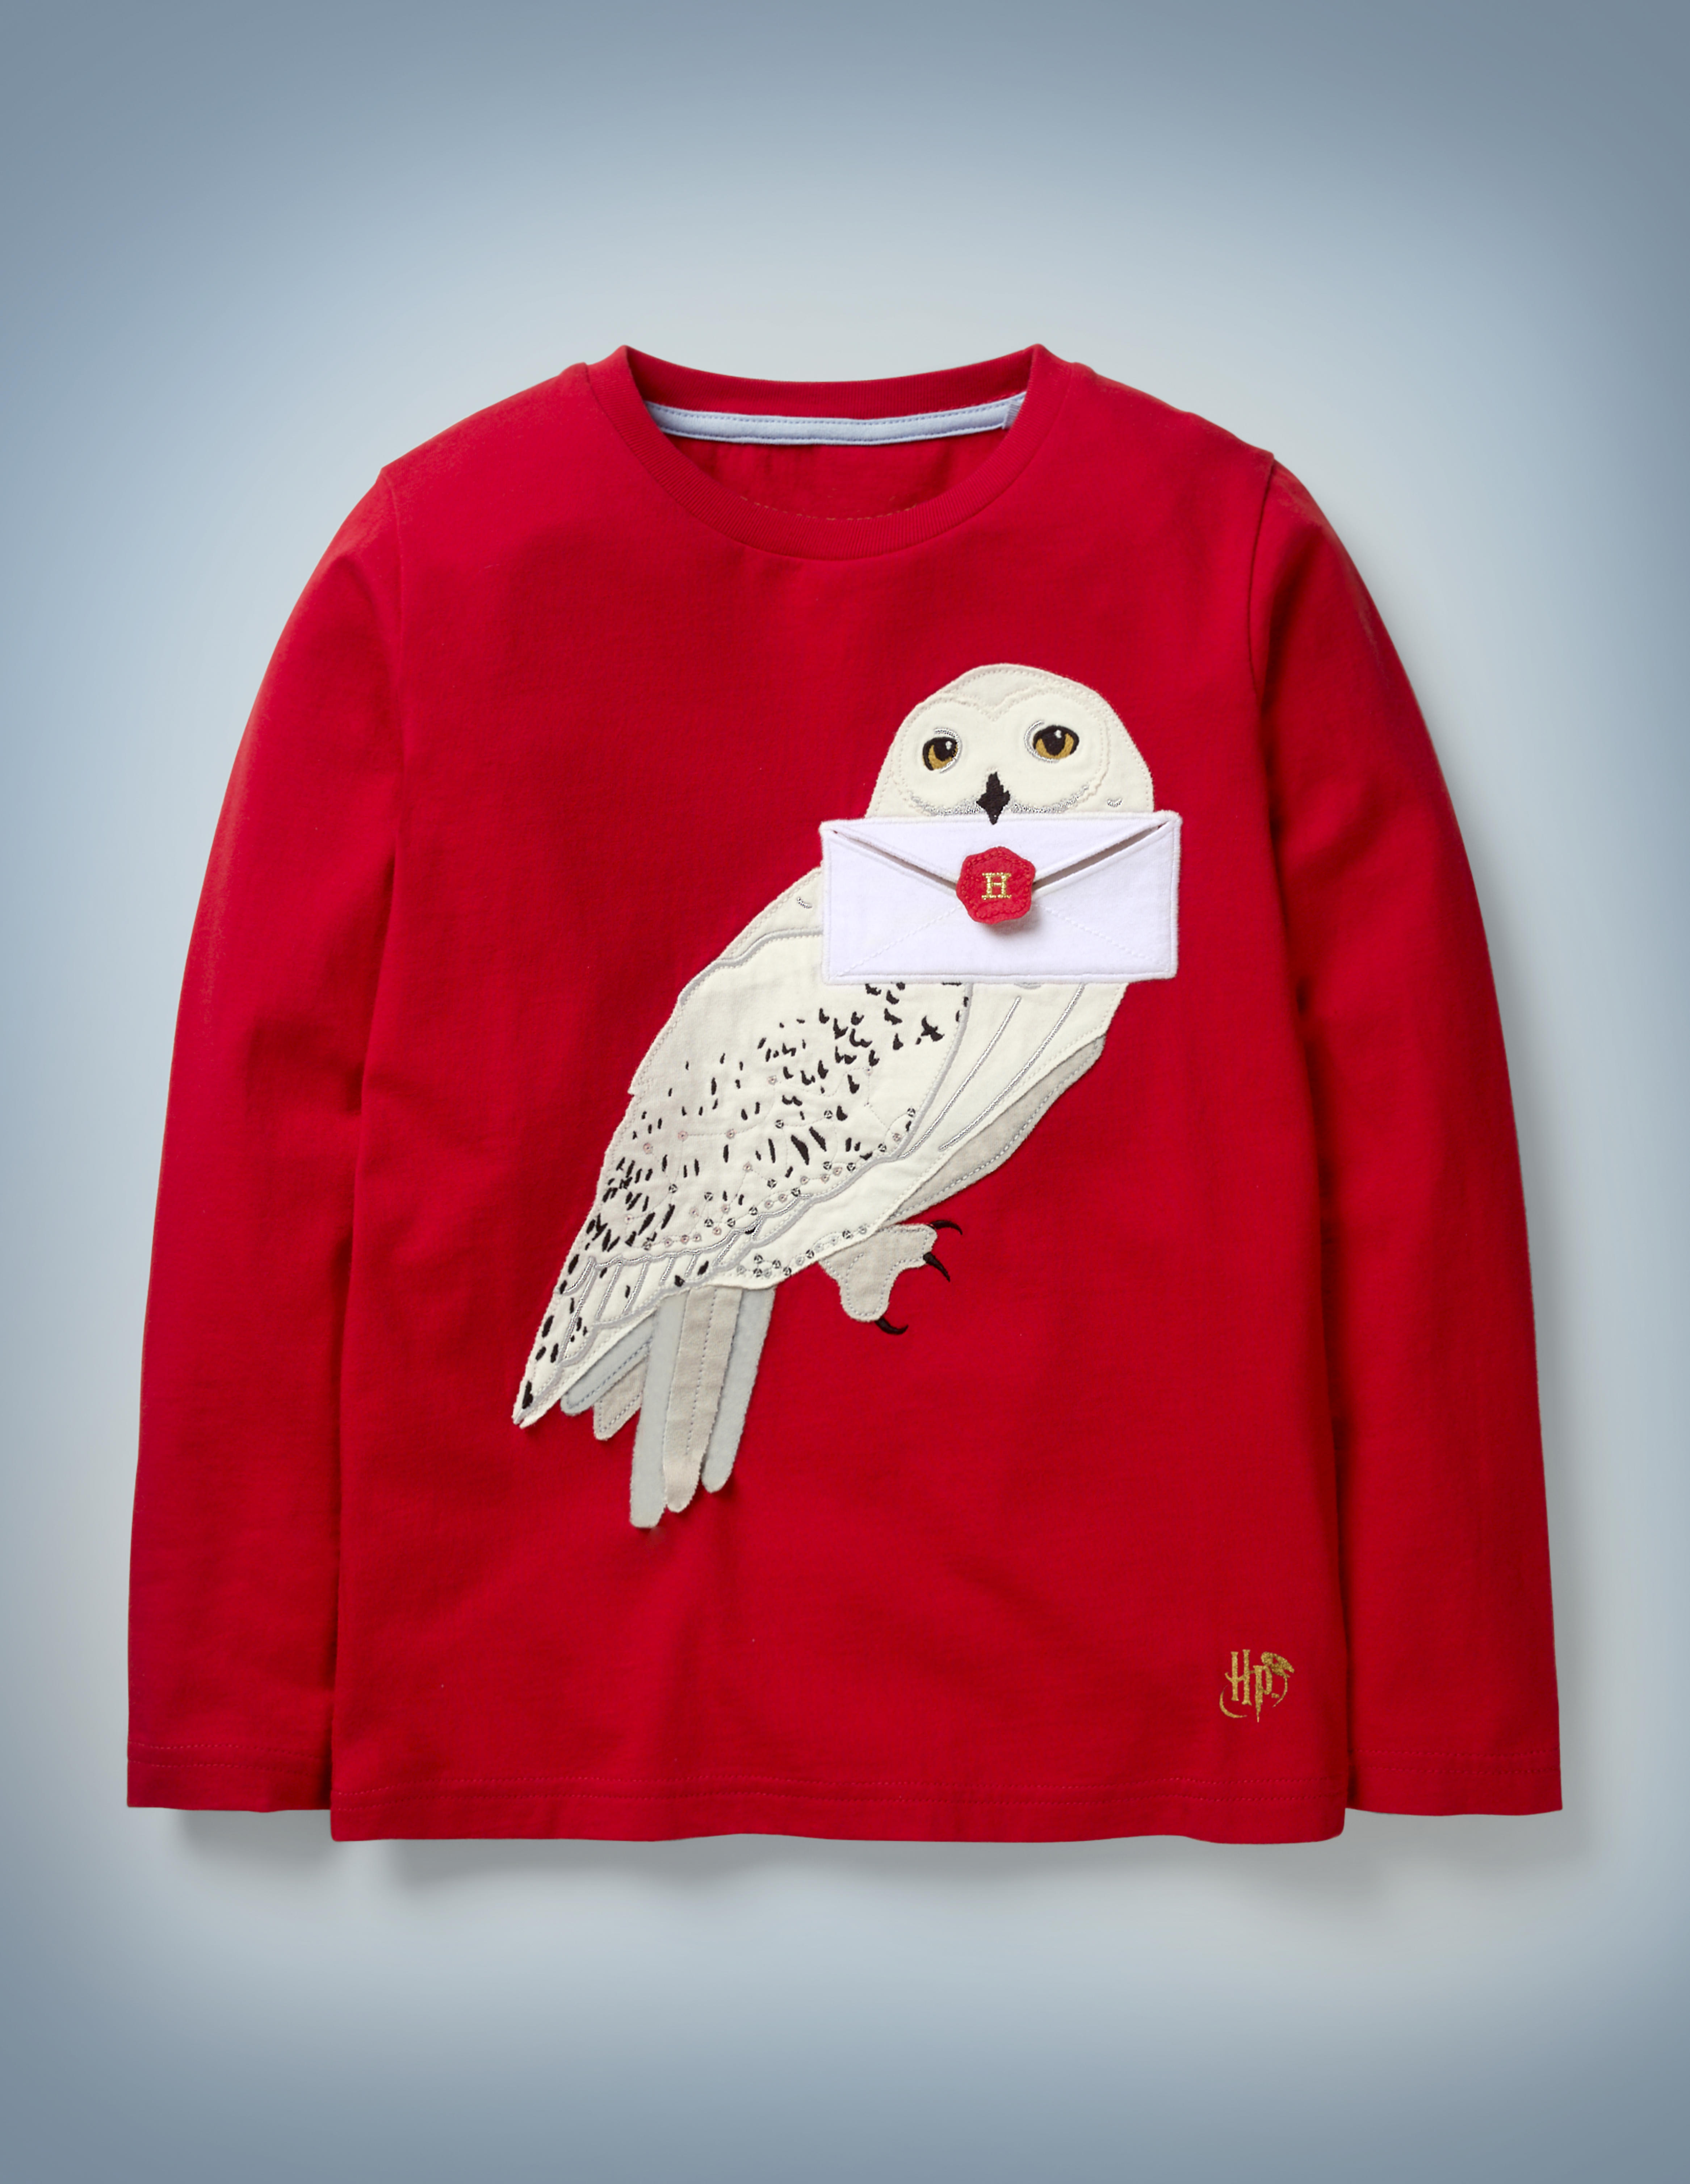 The Mini Boden Hedwig Appliqué T-shirt in red features an appliqué design of Harry Potter's beloved owl holding a Hogwarts acceptance letter in her beak. The shirt retails at £22.